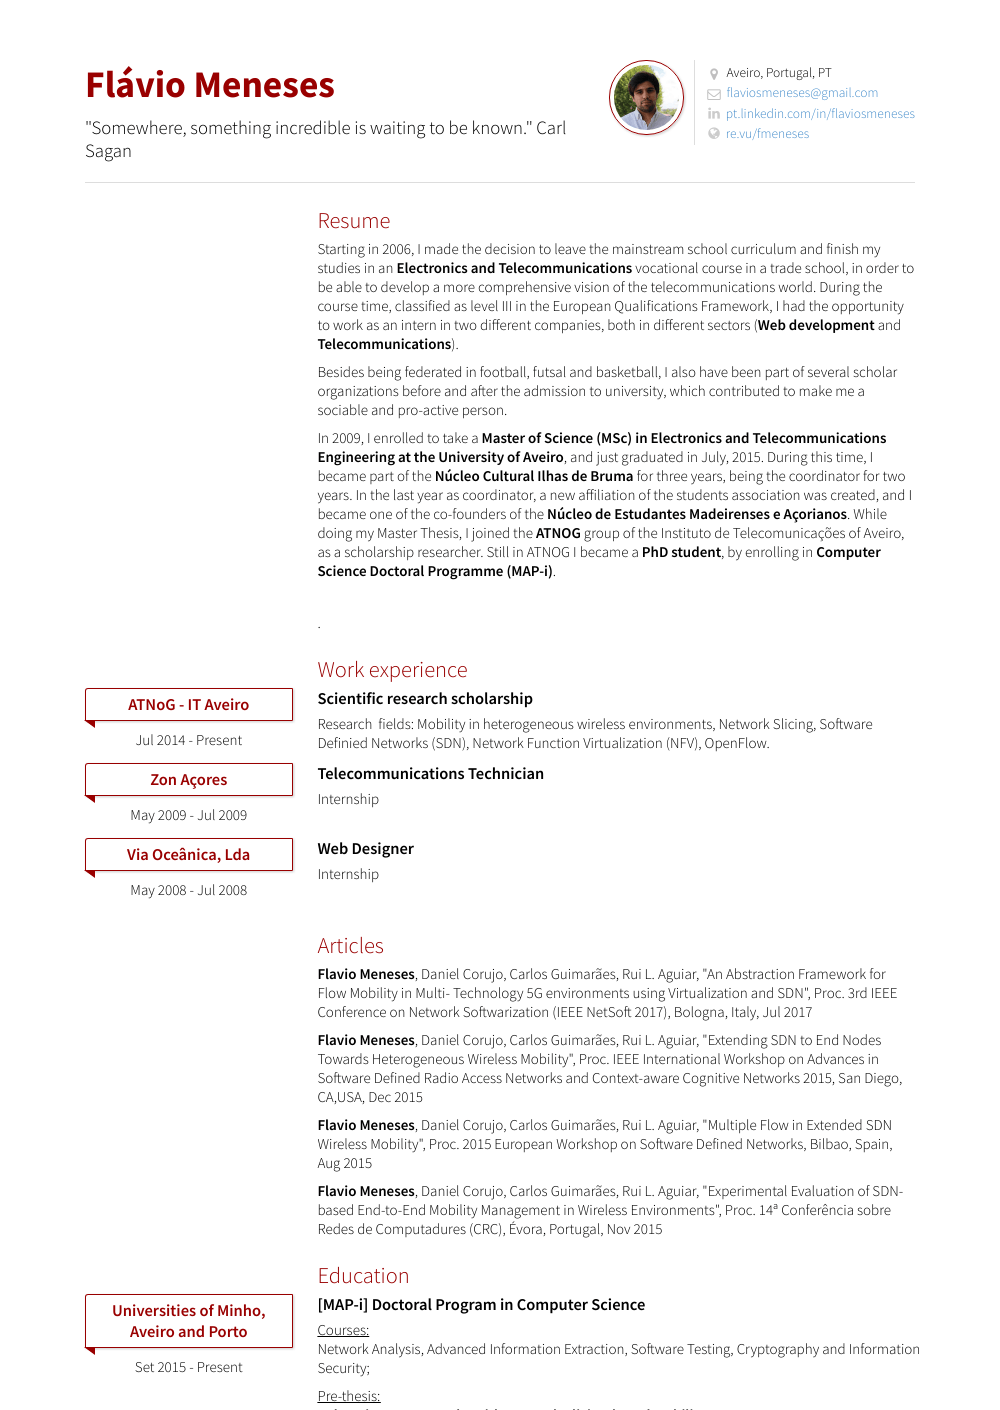 Research Scholar - Resume Samples and Templates | VisualCV